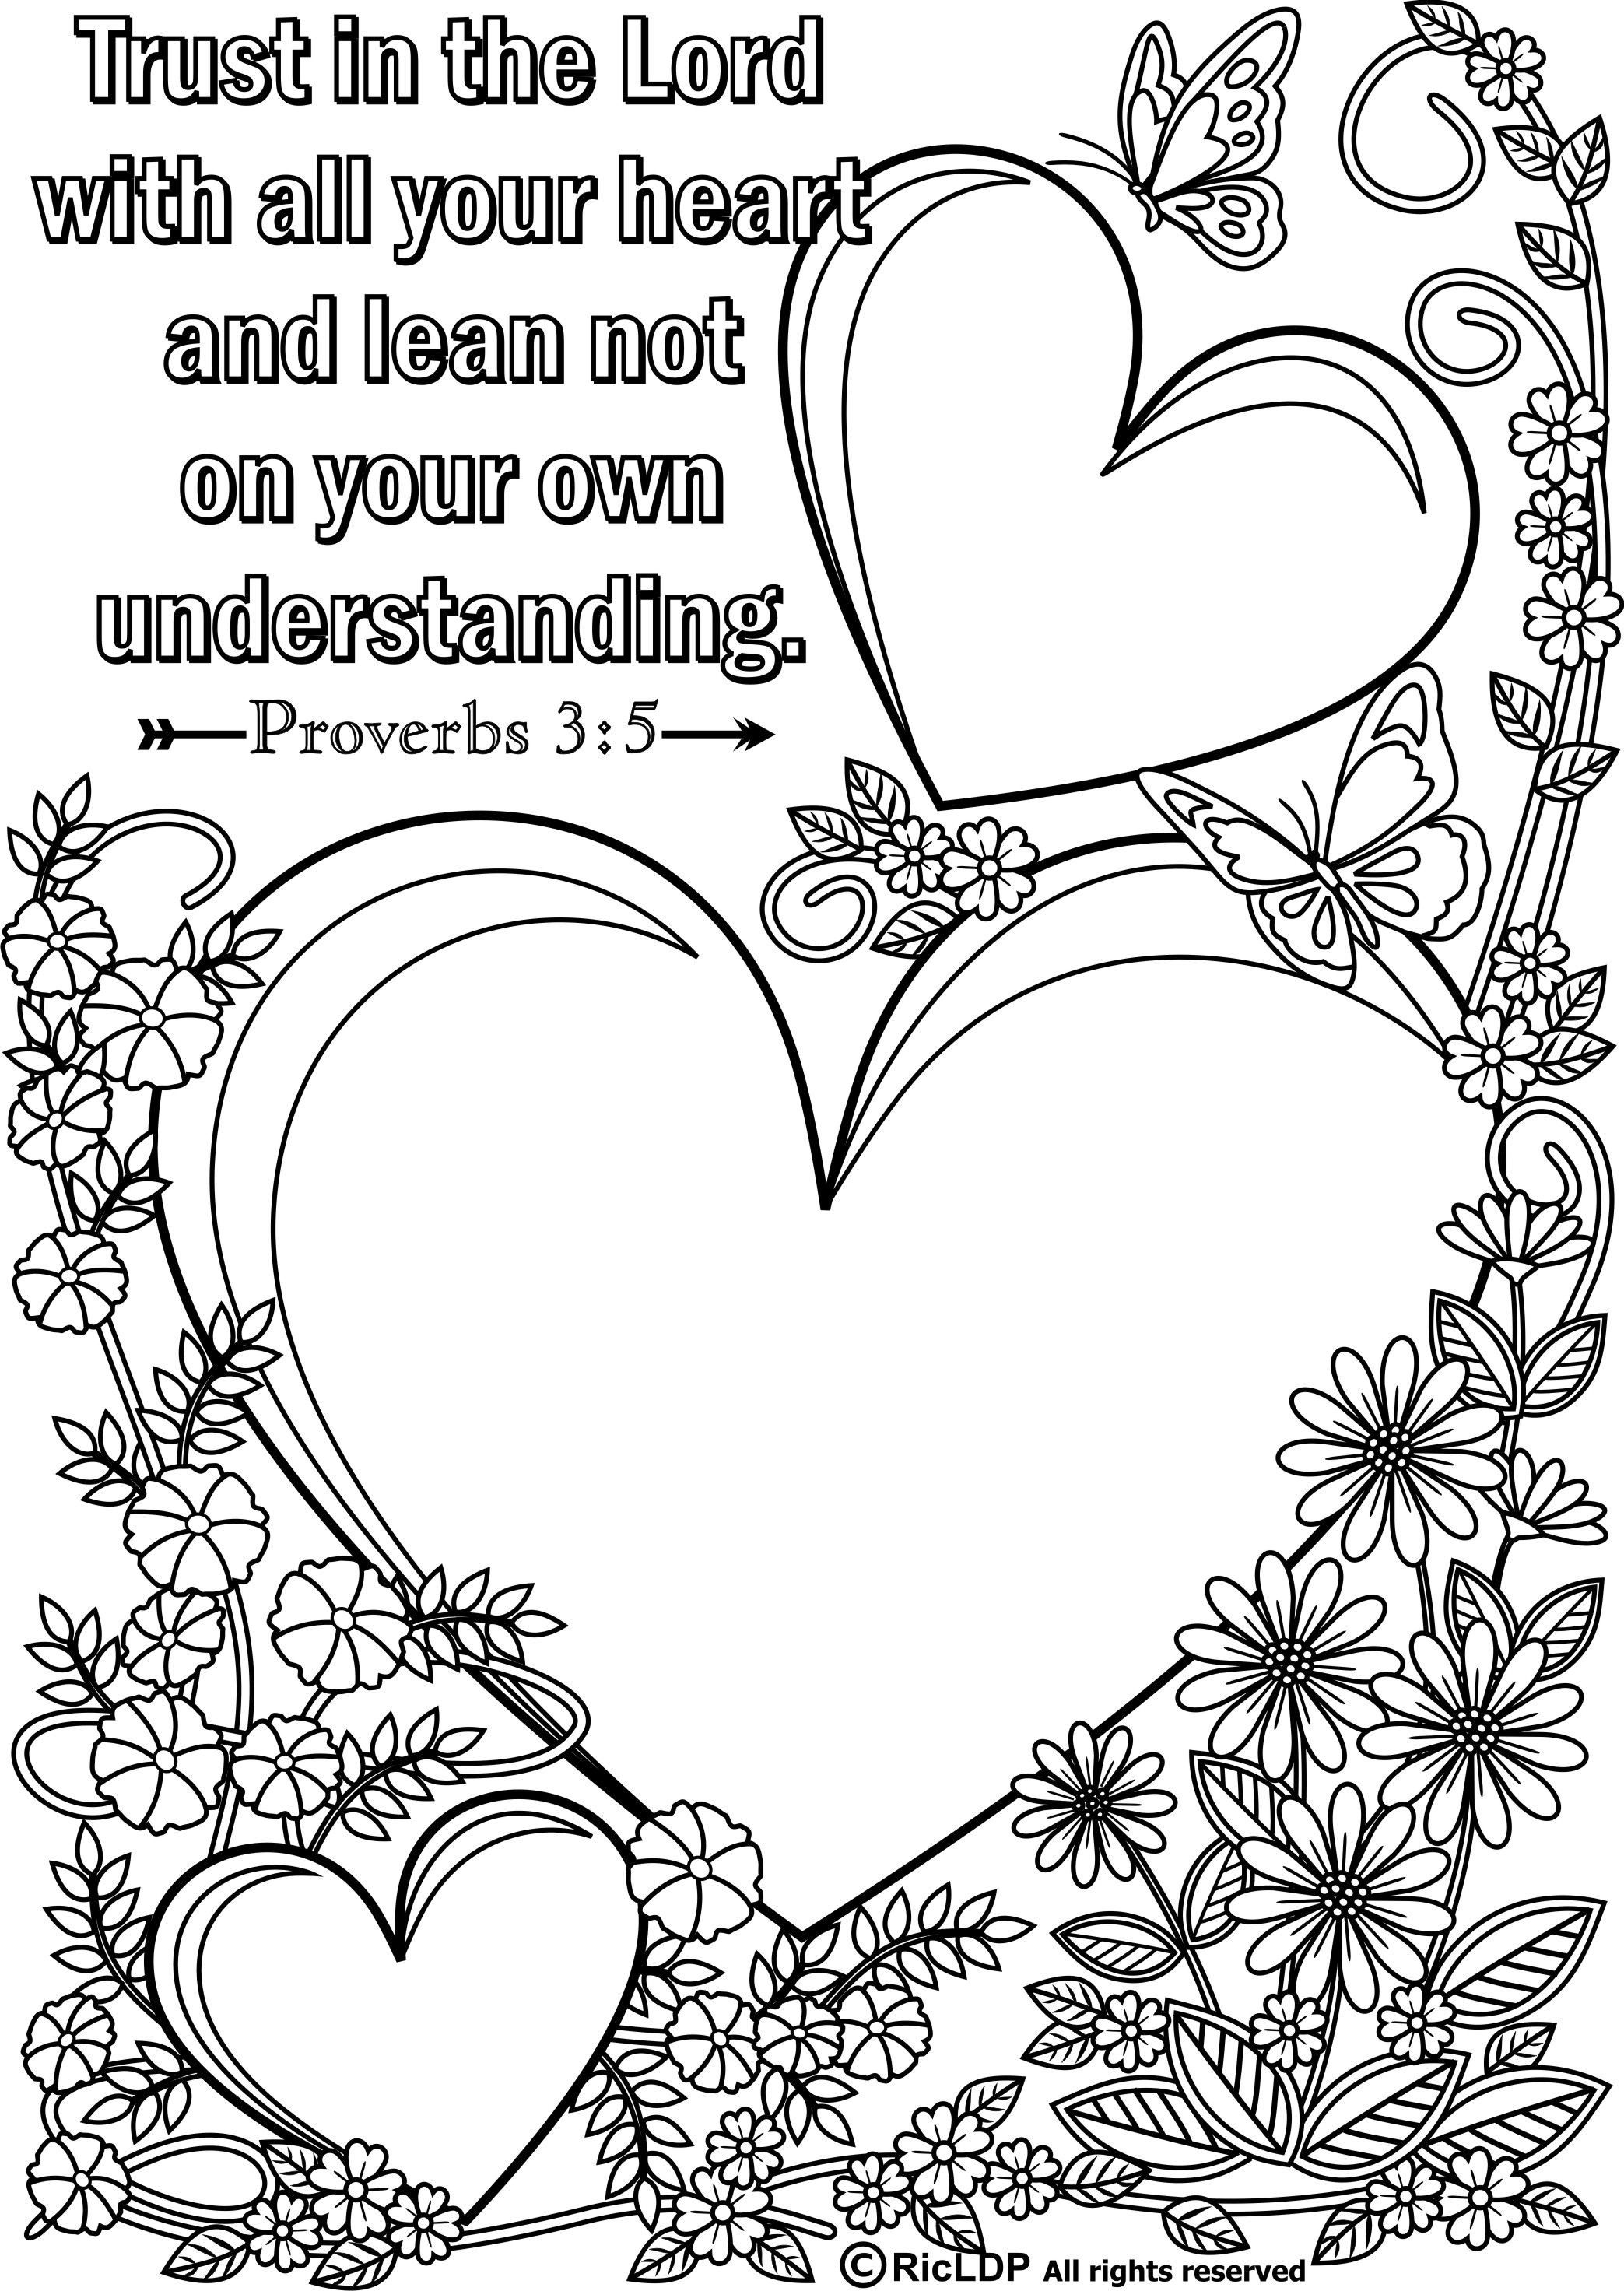 Coloring Sheets For Kids On Worrying  15 Printable Bible Verse Coloring Pages